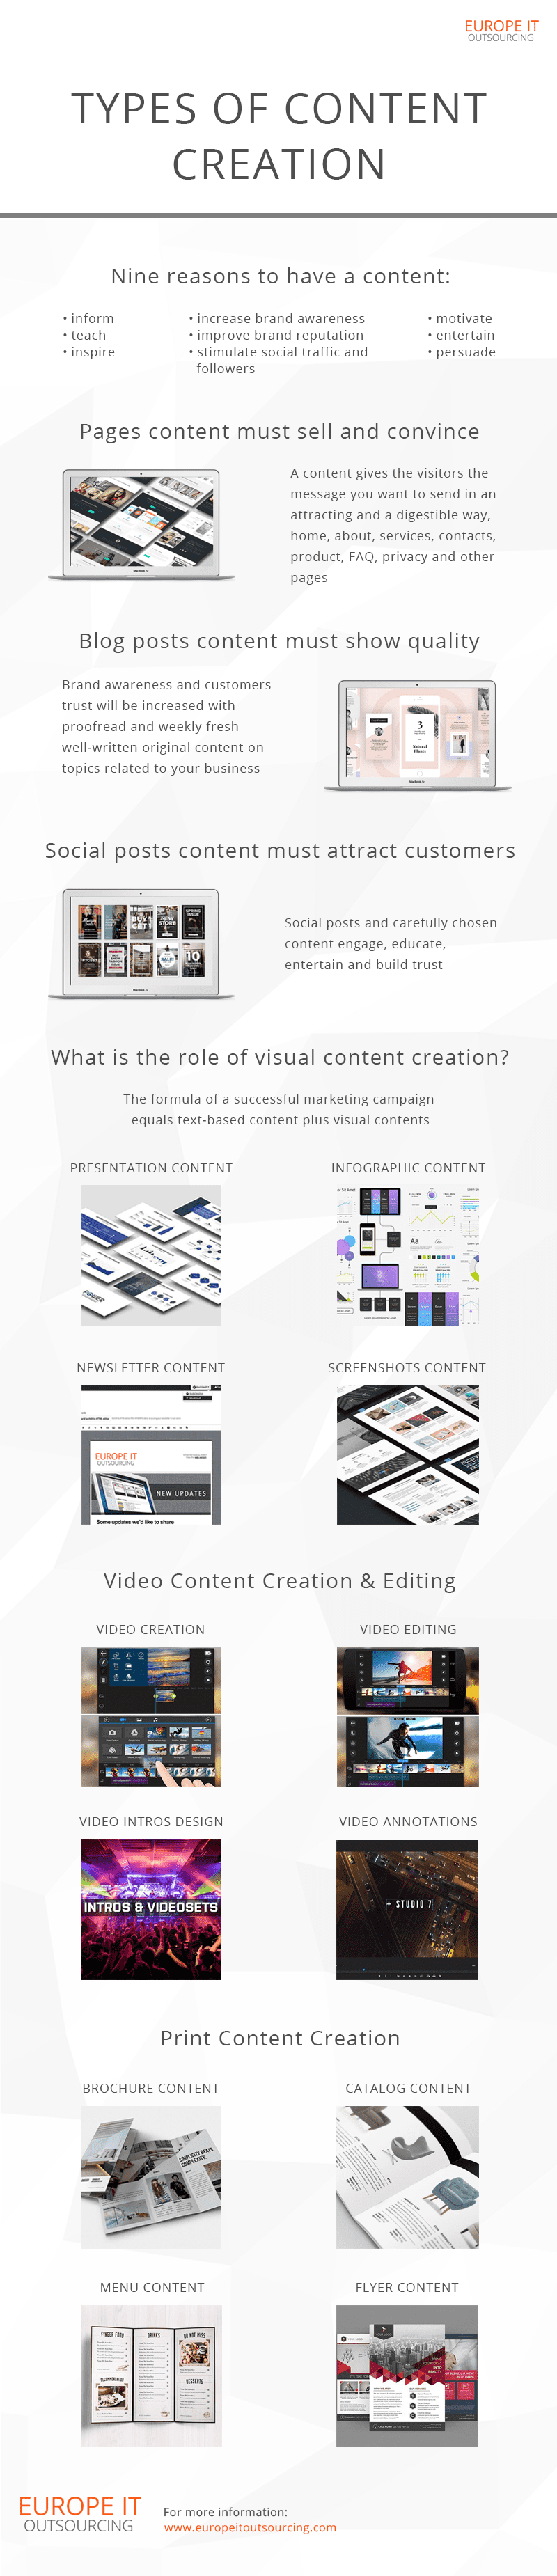 Types of Content Creation